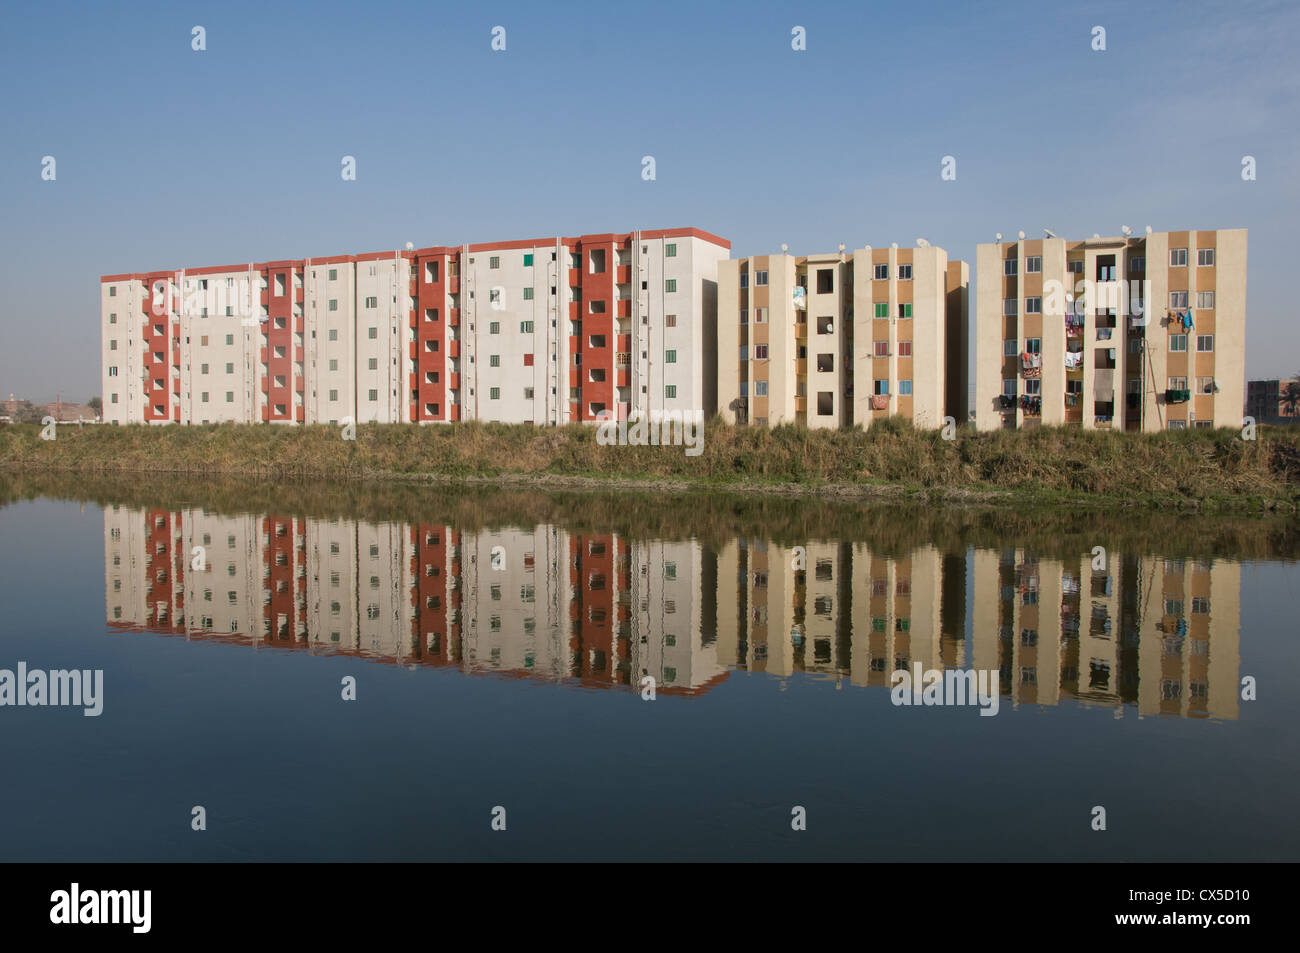 Buildings with apartments on the shore of the Nile River Minya Upper Egypt - Stock Image